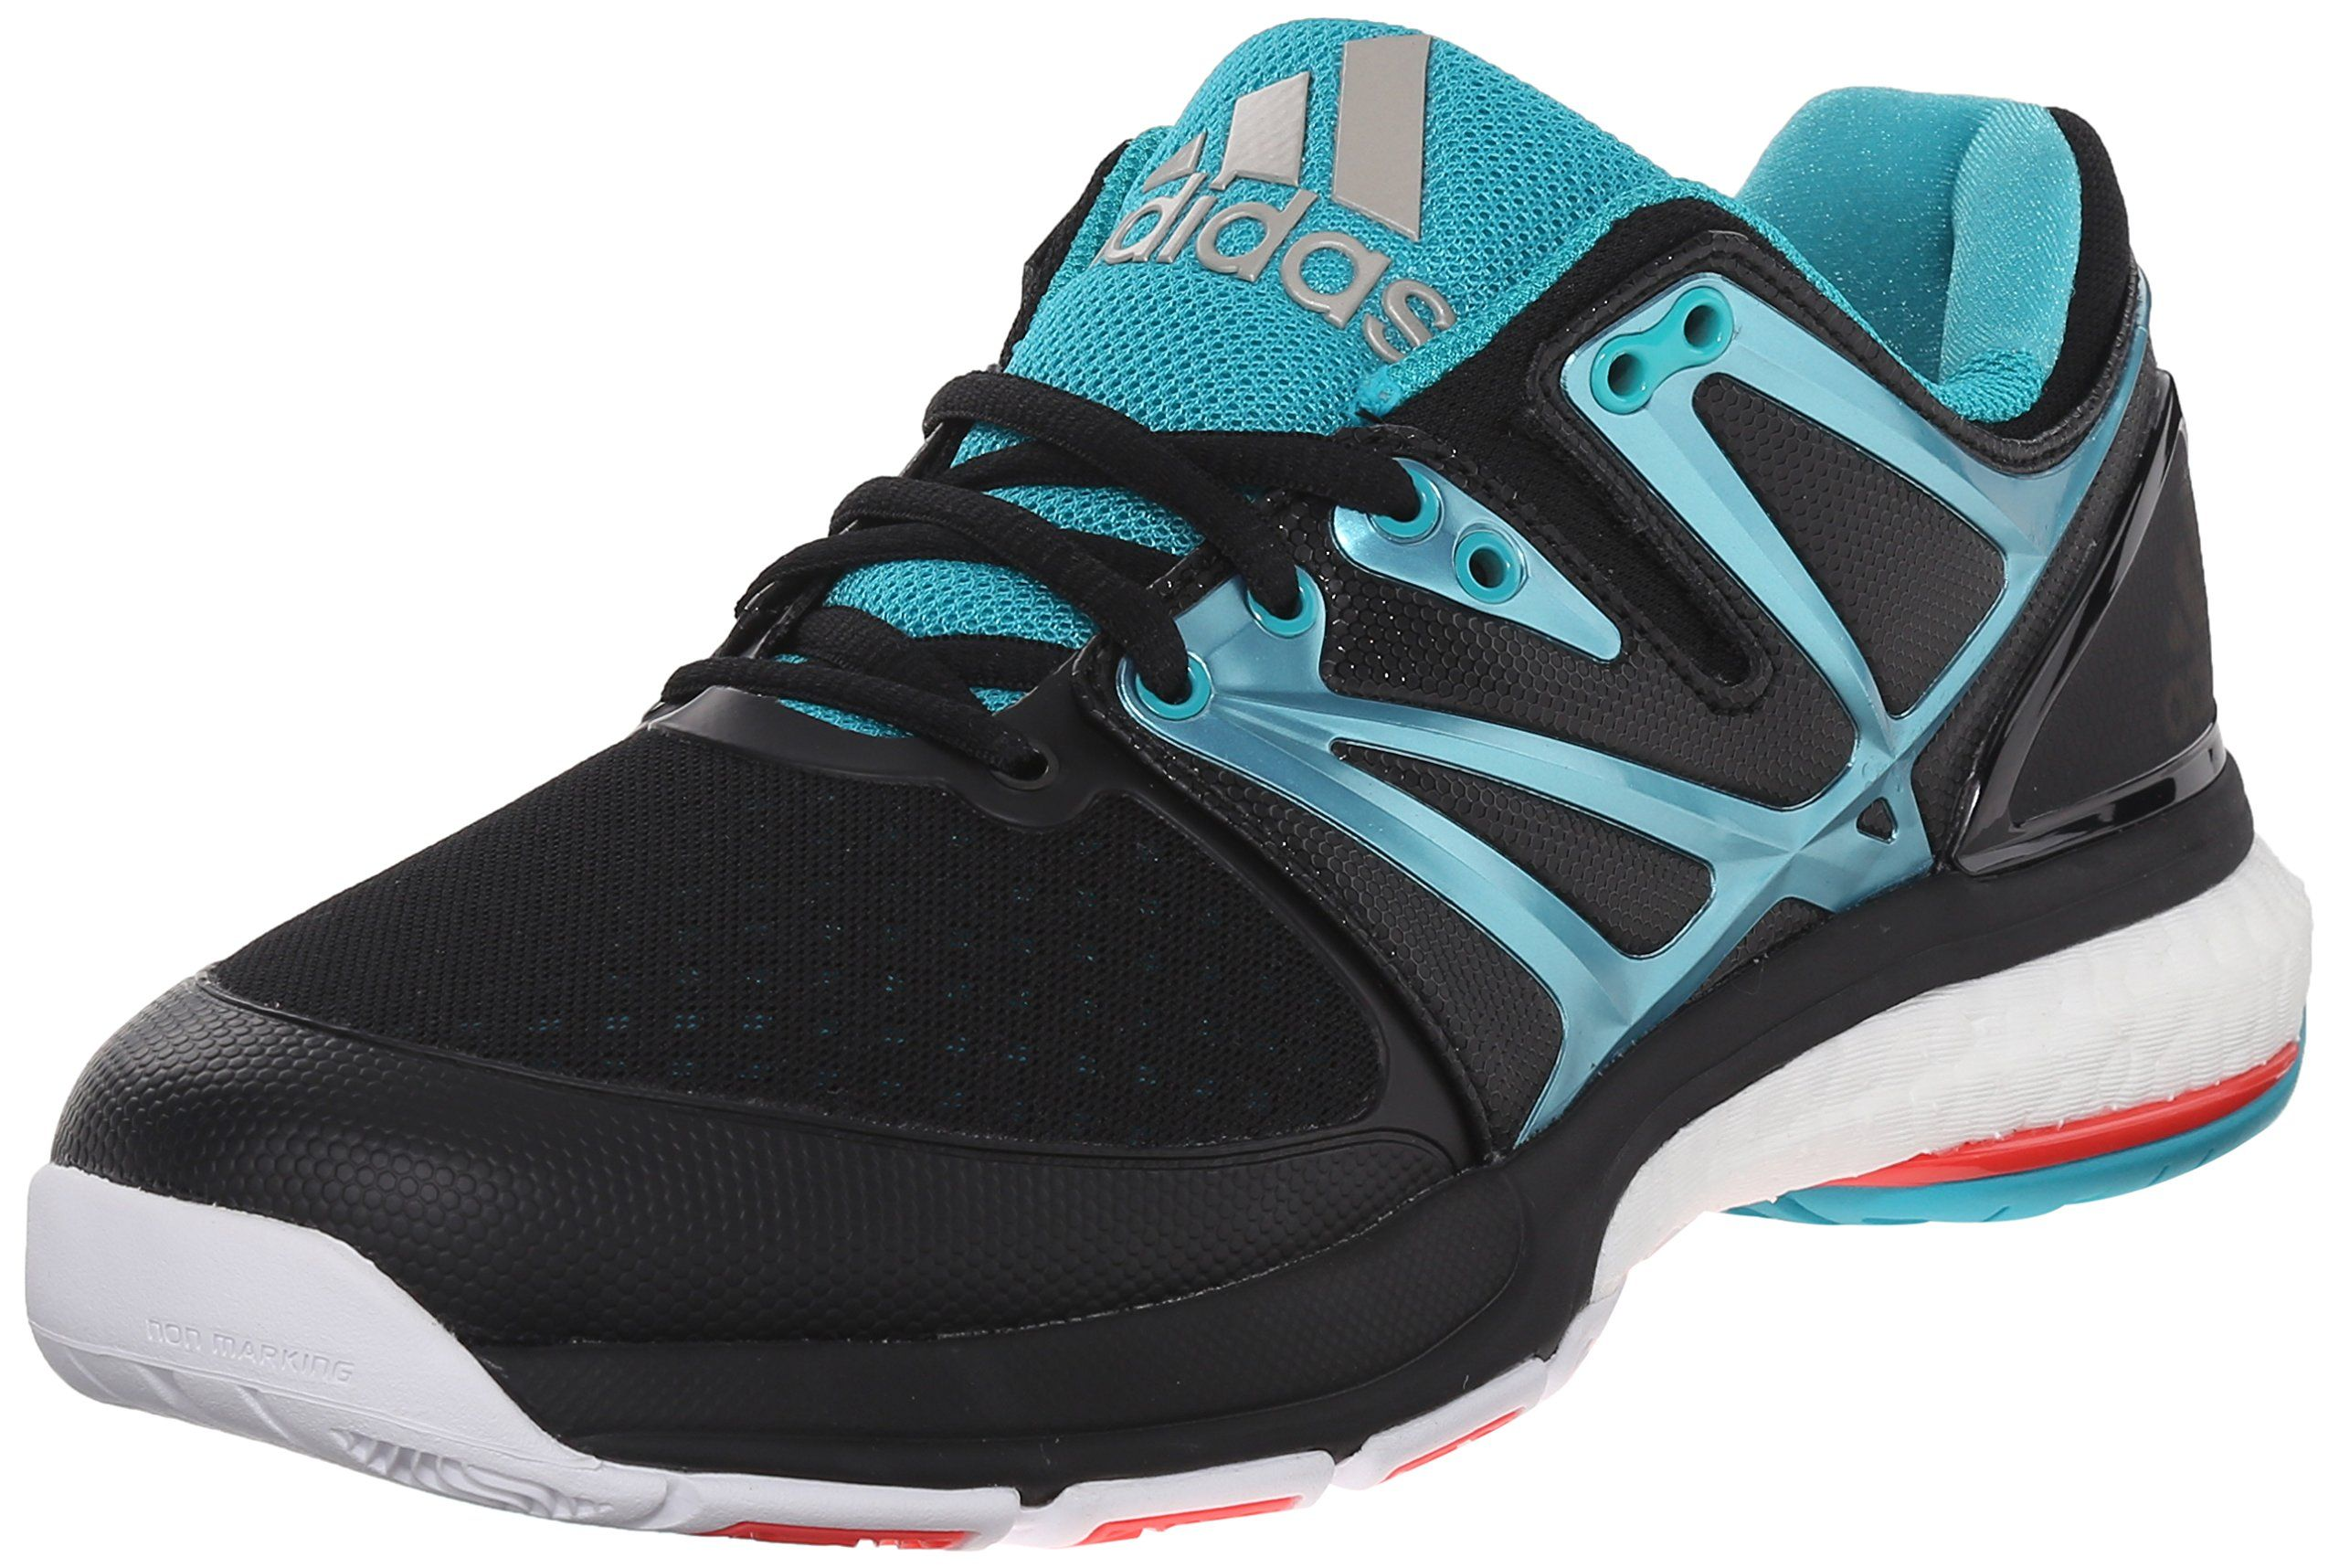 Adidas Stabil Boost Volleyball Shoe, Cor